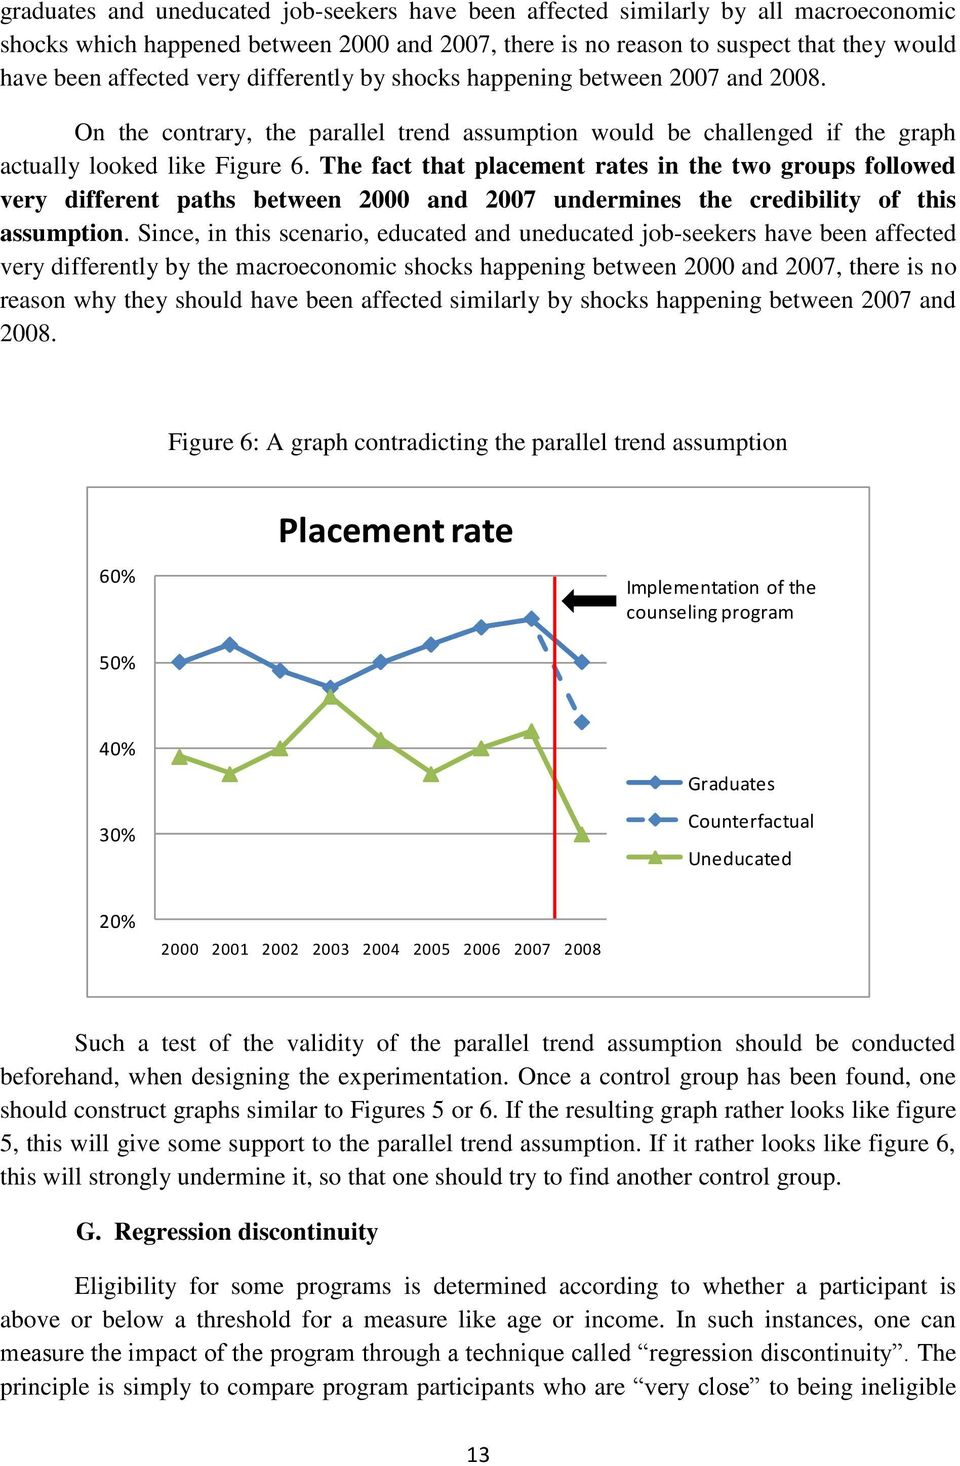 The fact that placement rates in the two groups followed very different paths between 2000 and 2007 undermines the credibility of this assumption.